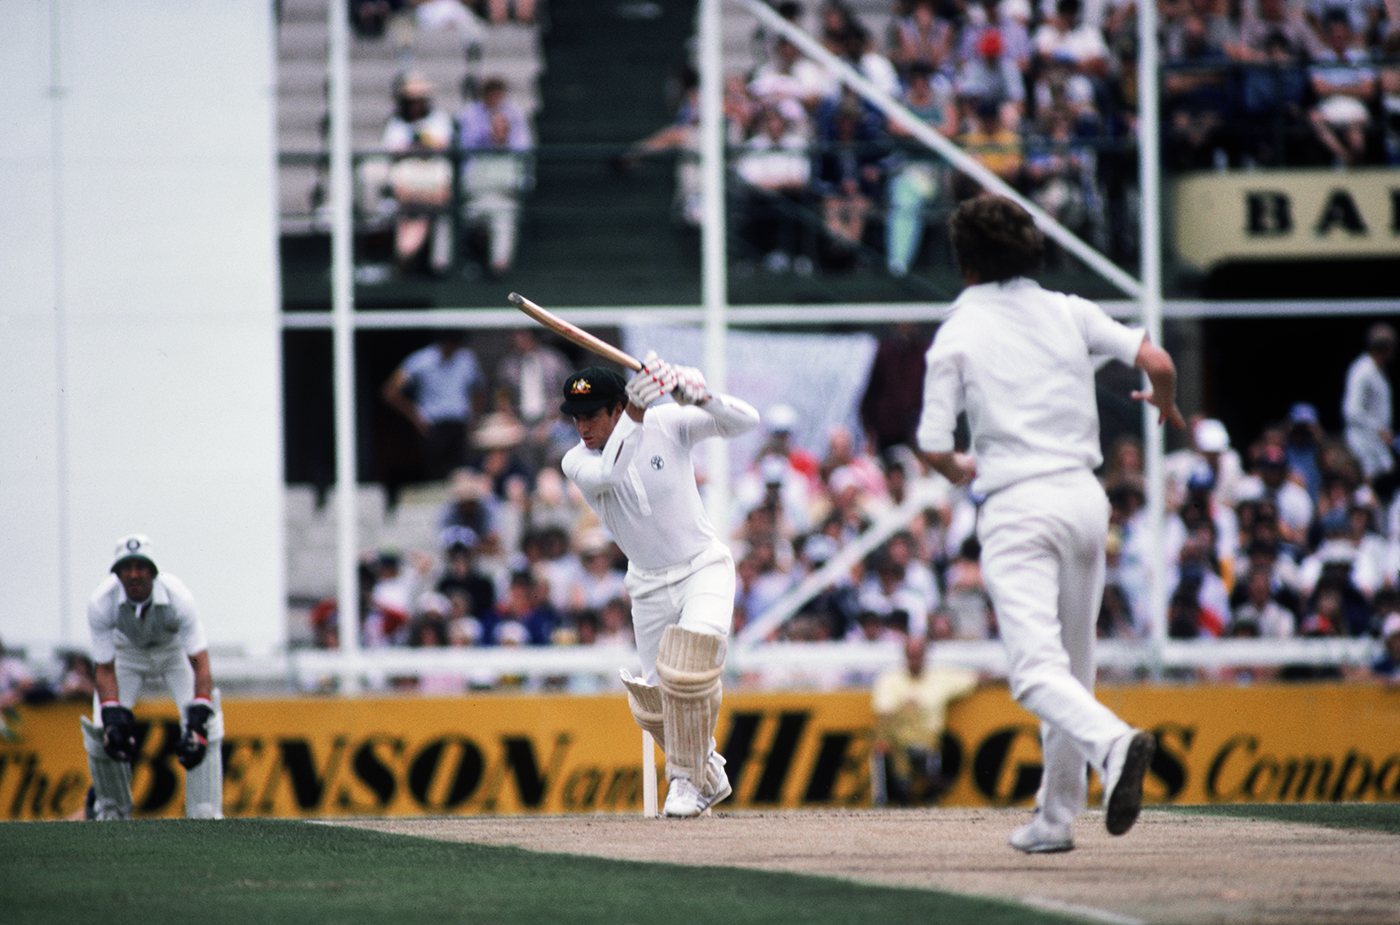 After his revelation in Hobart, Greg Chappell made more than 6500 runs at 54.93